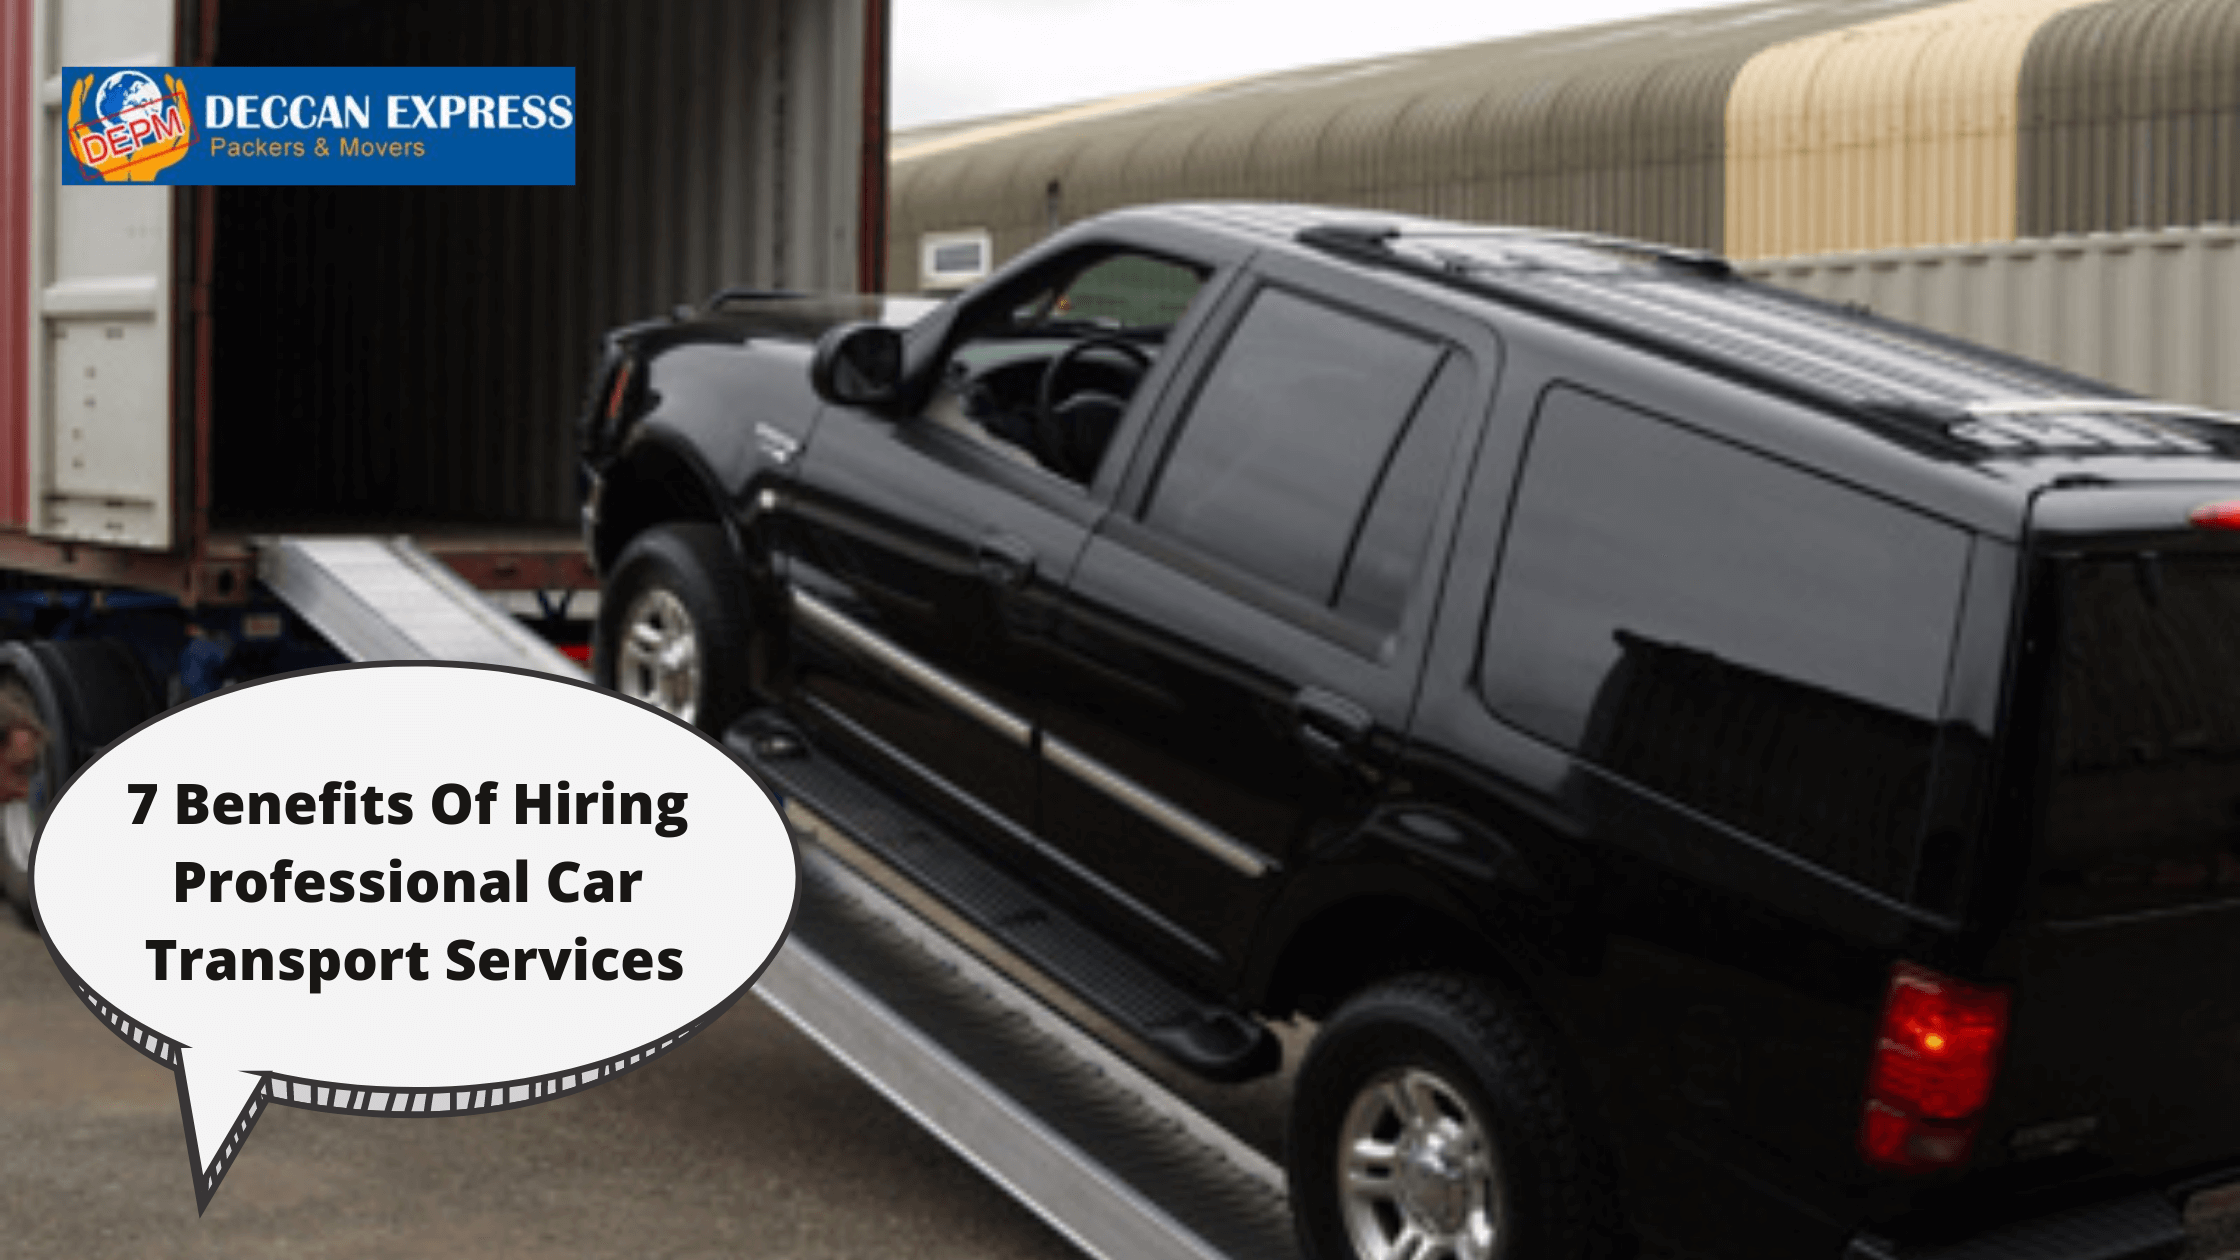 7 Benefits Of Hiring Professional Car Transport Services